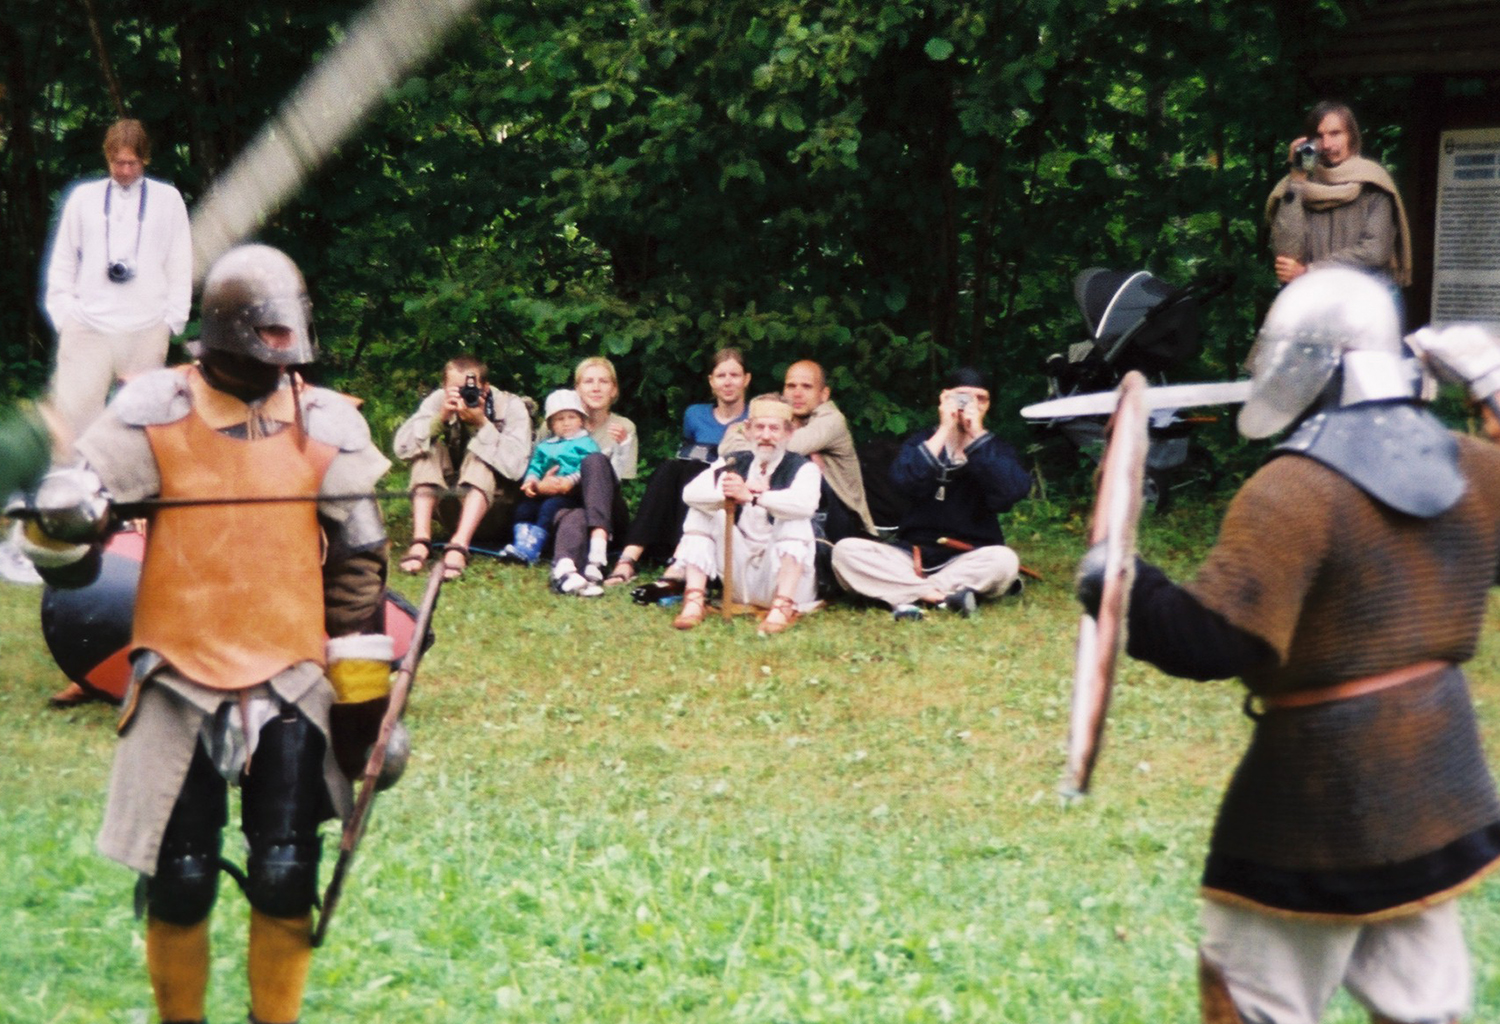 Warriors interact with guests between battles.